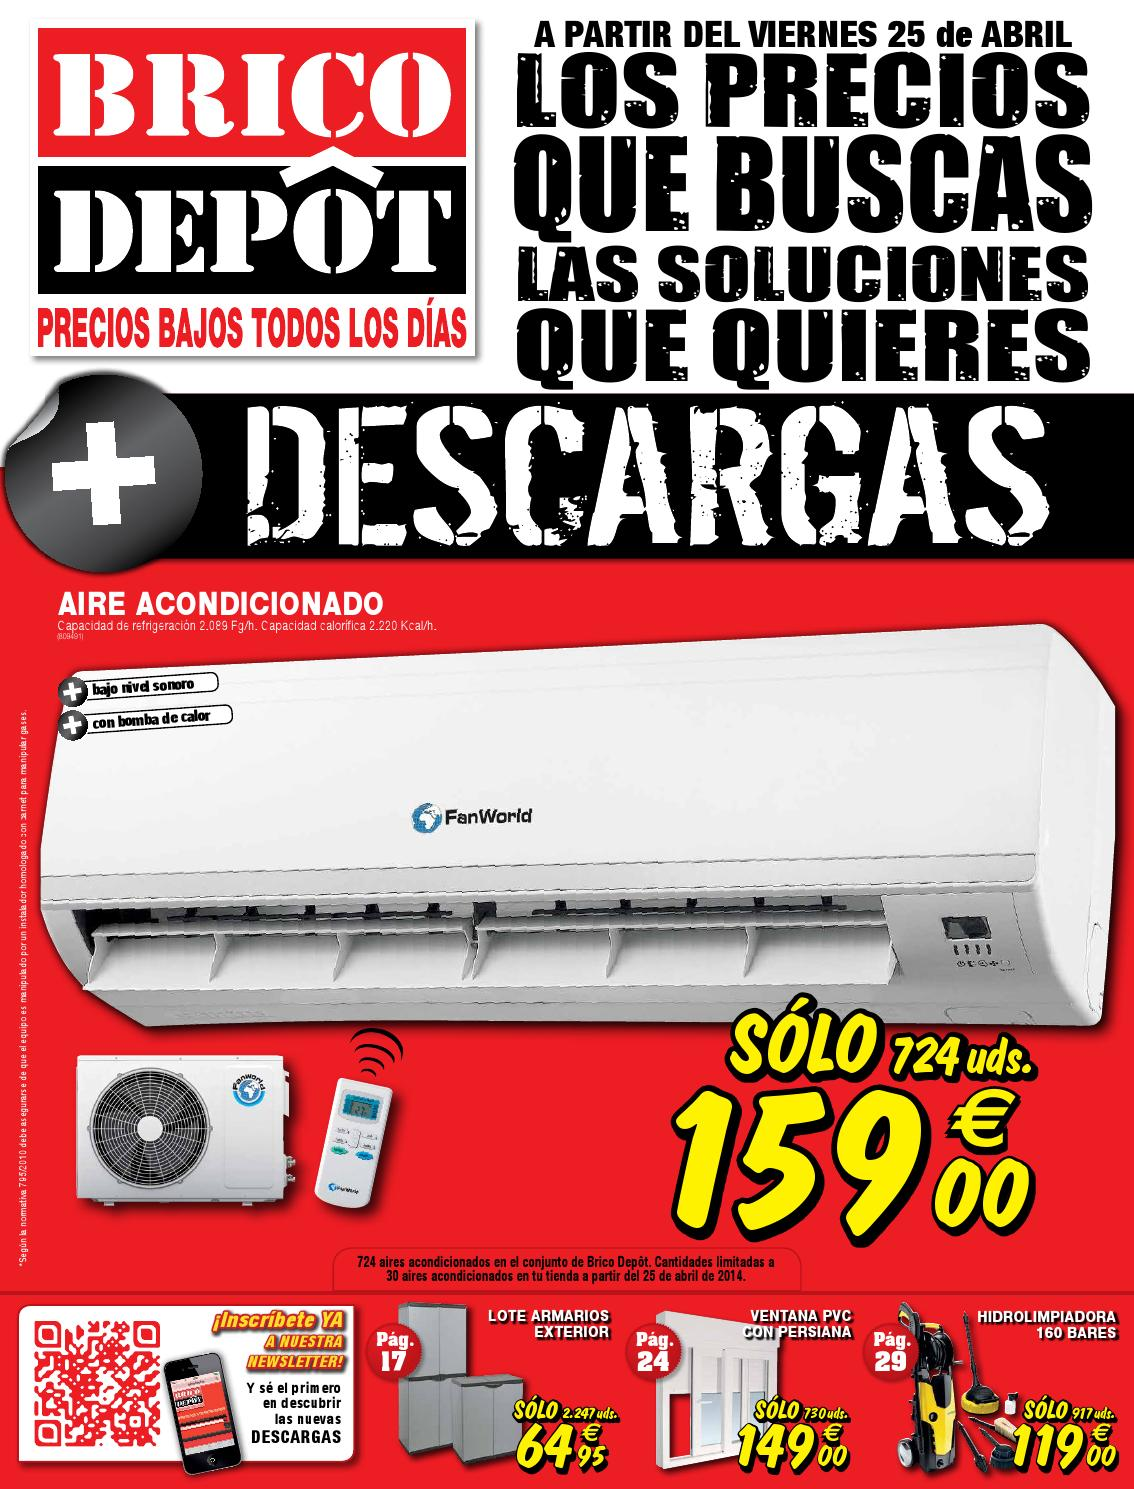 bricodepot catalogue 25abril 8mayo2014 by